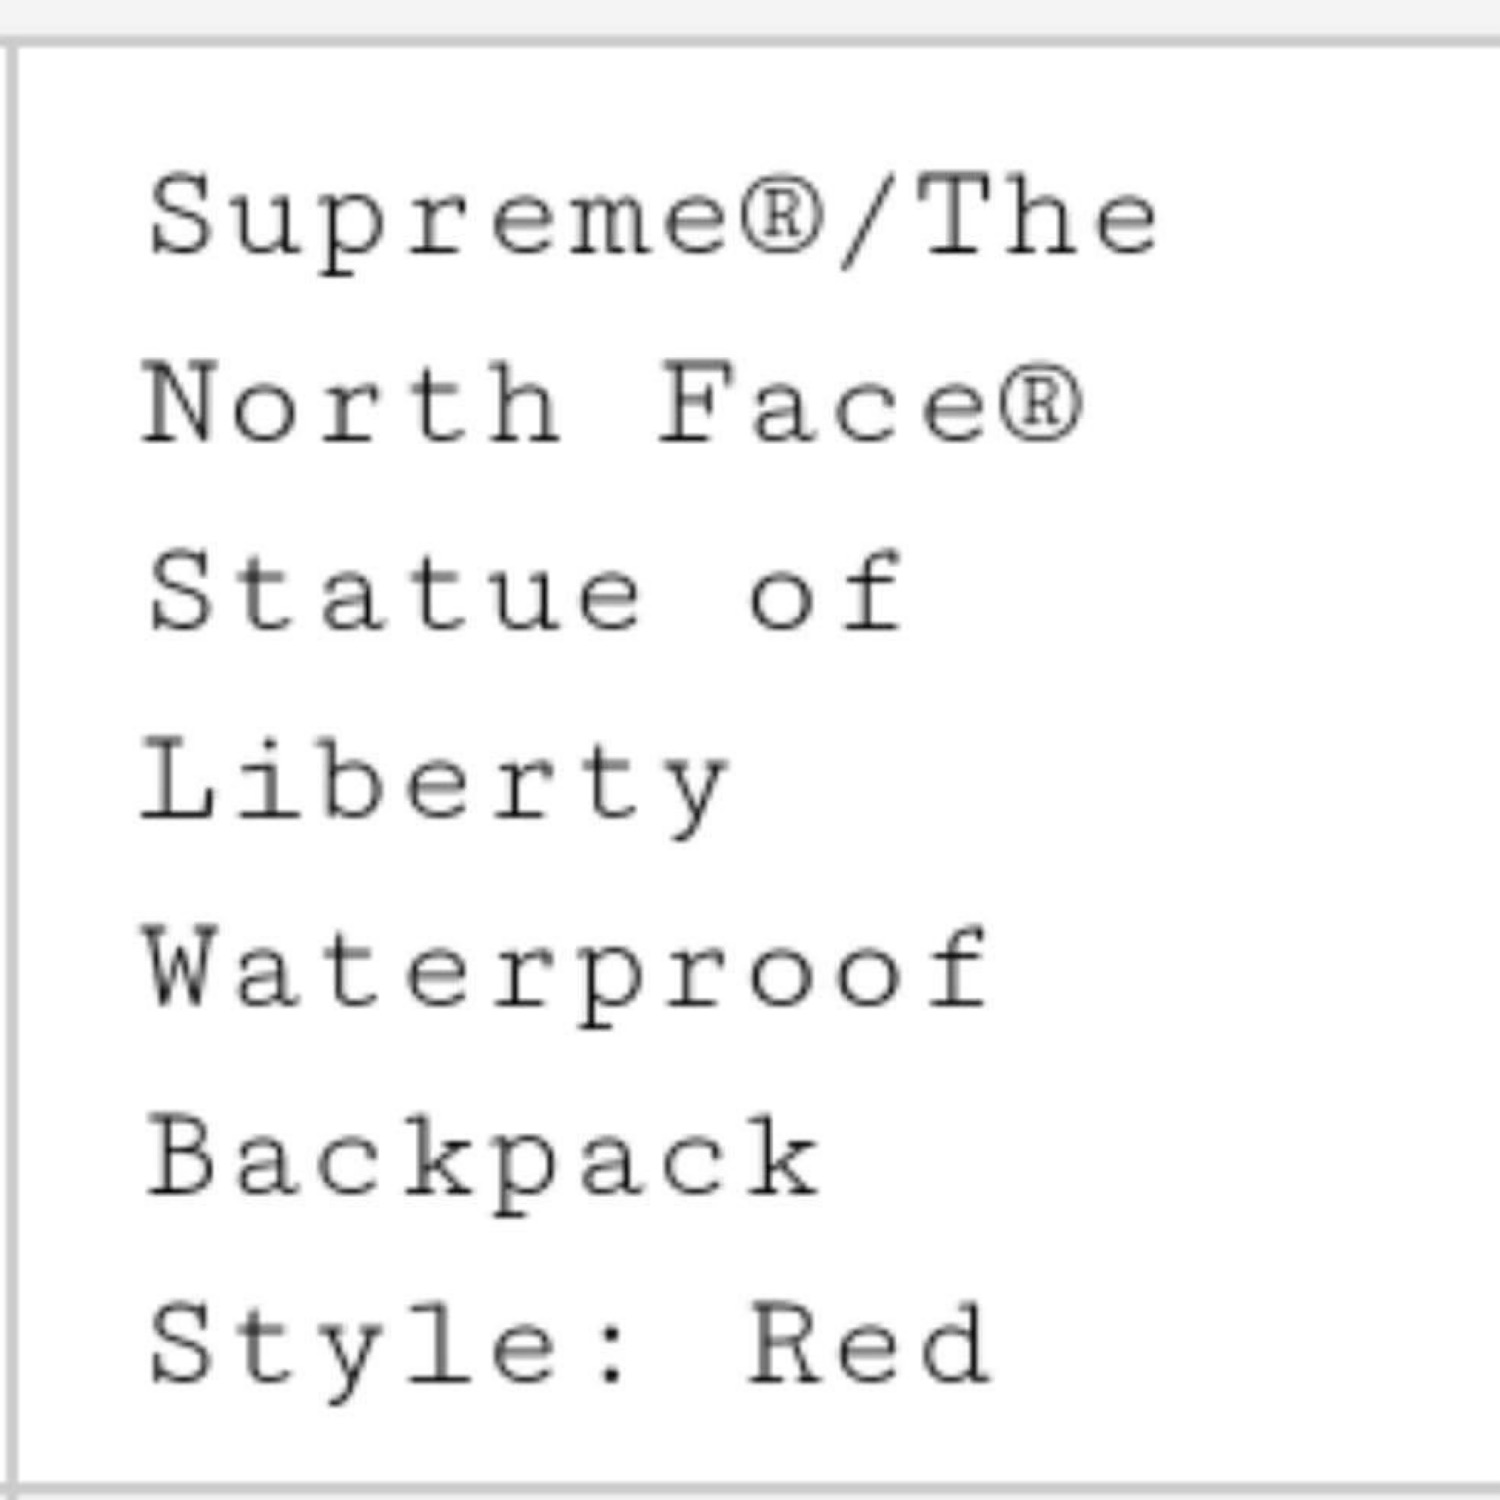 Supreme X Tnf/ Backpack / Statue Of Liberty /Red